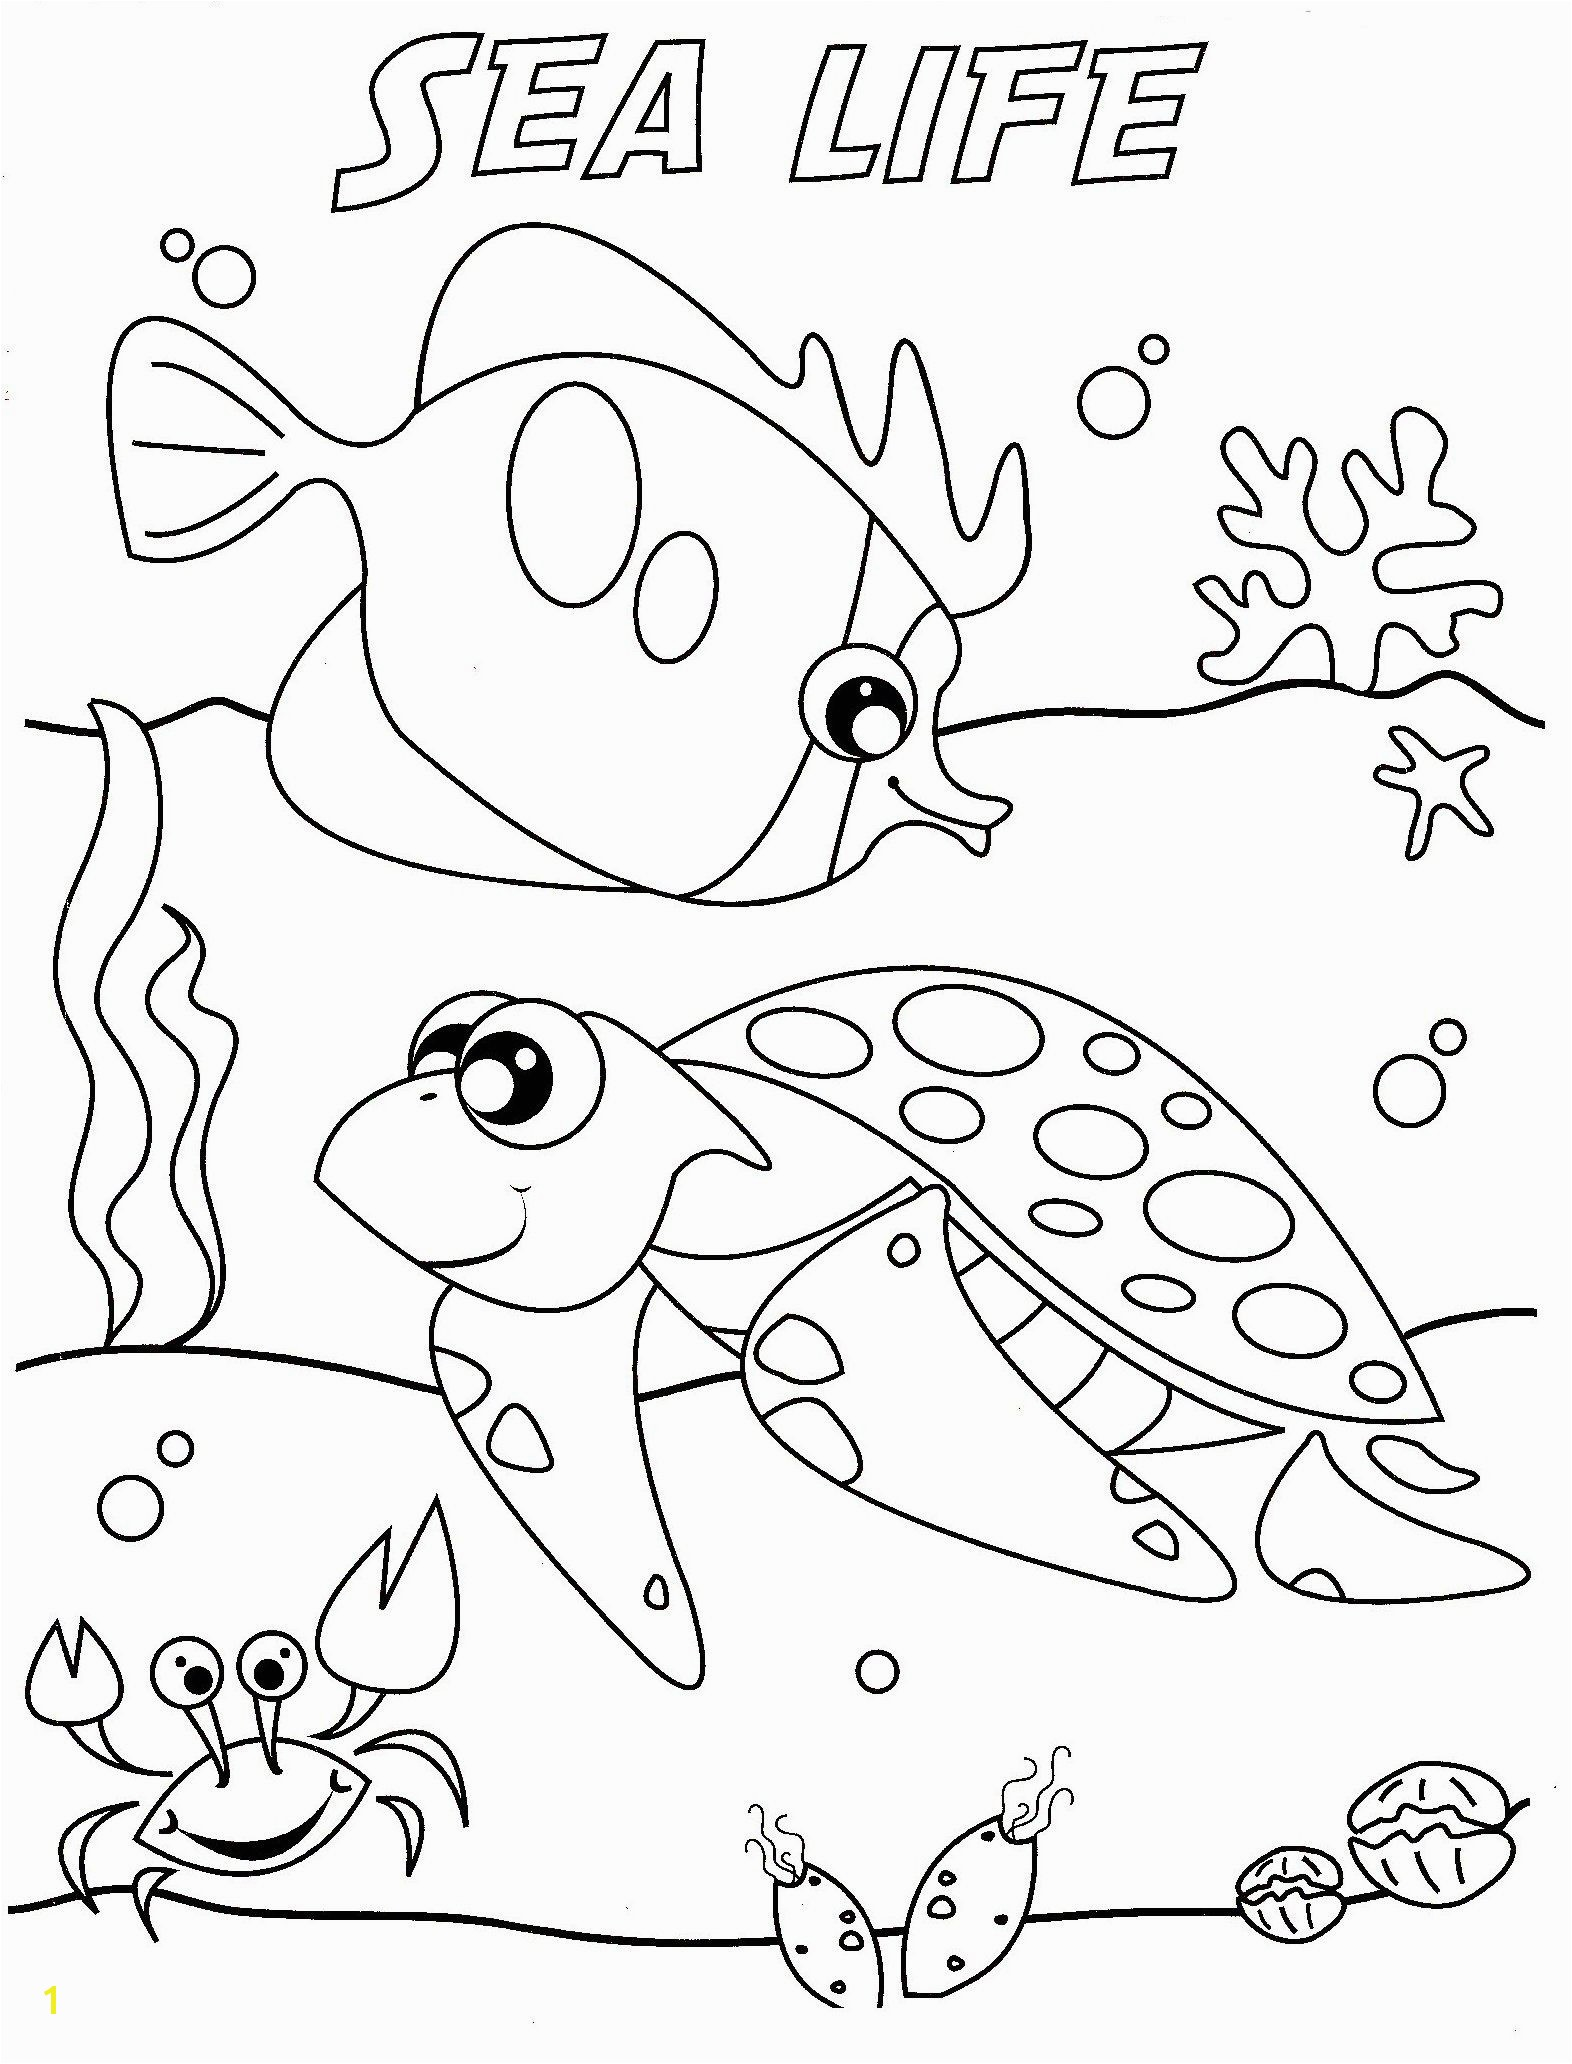 Ocean life coloring pages to and print for free